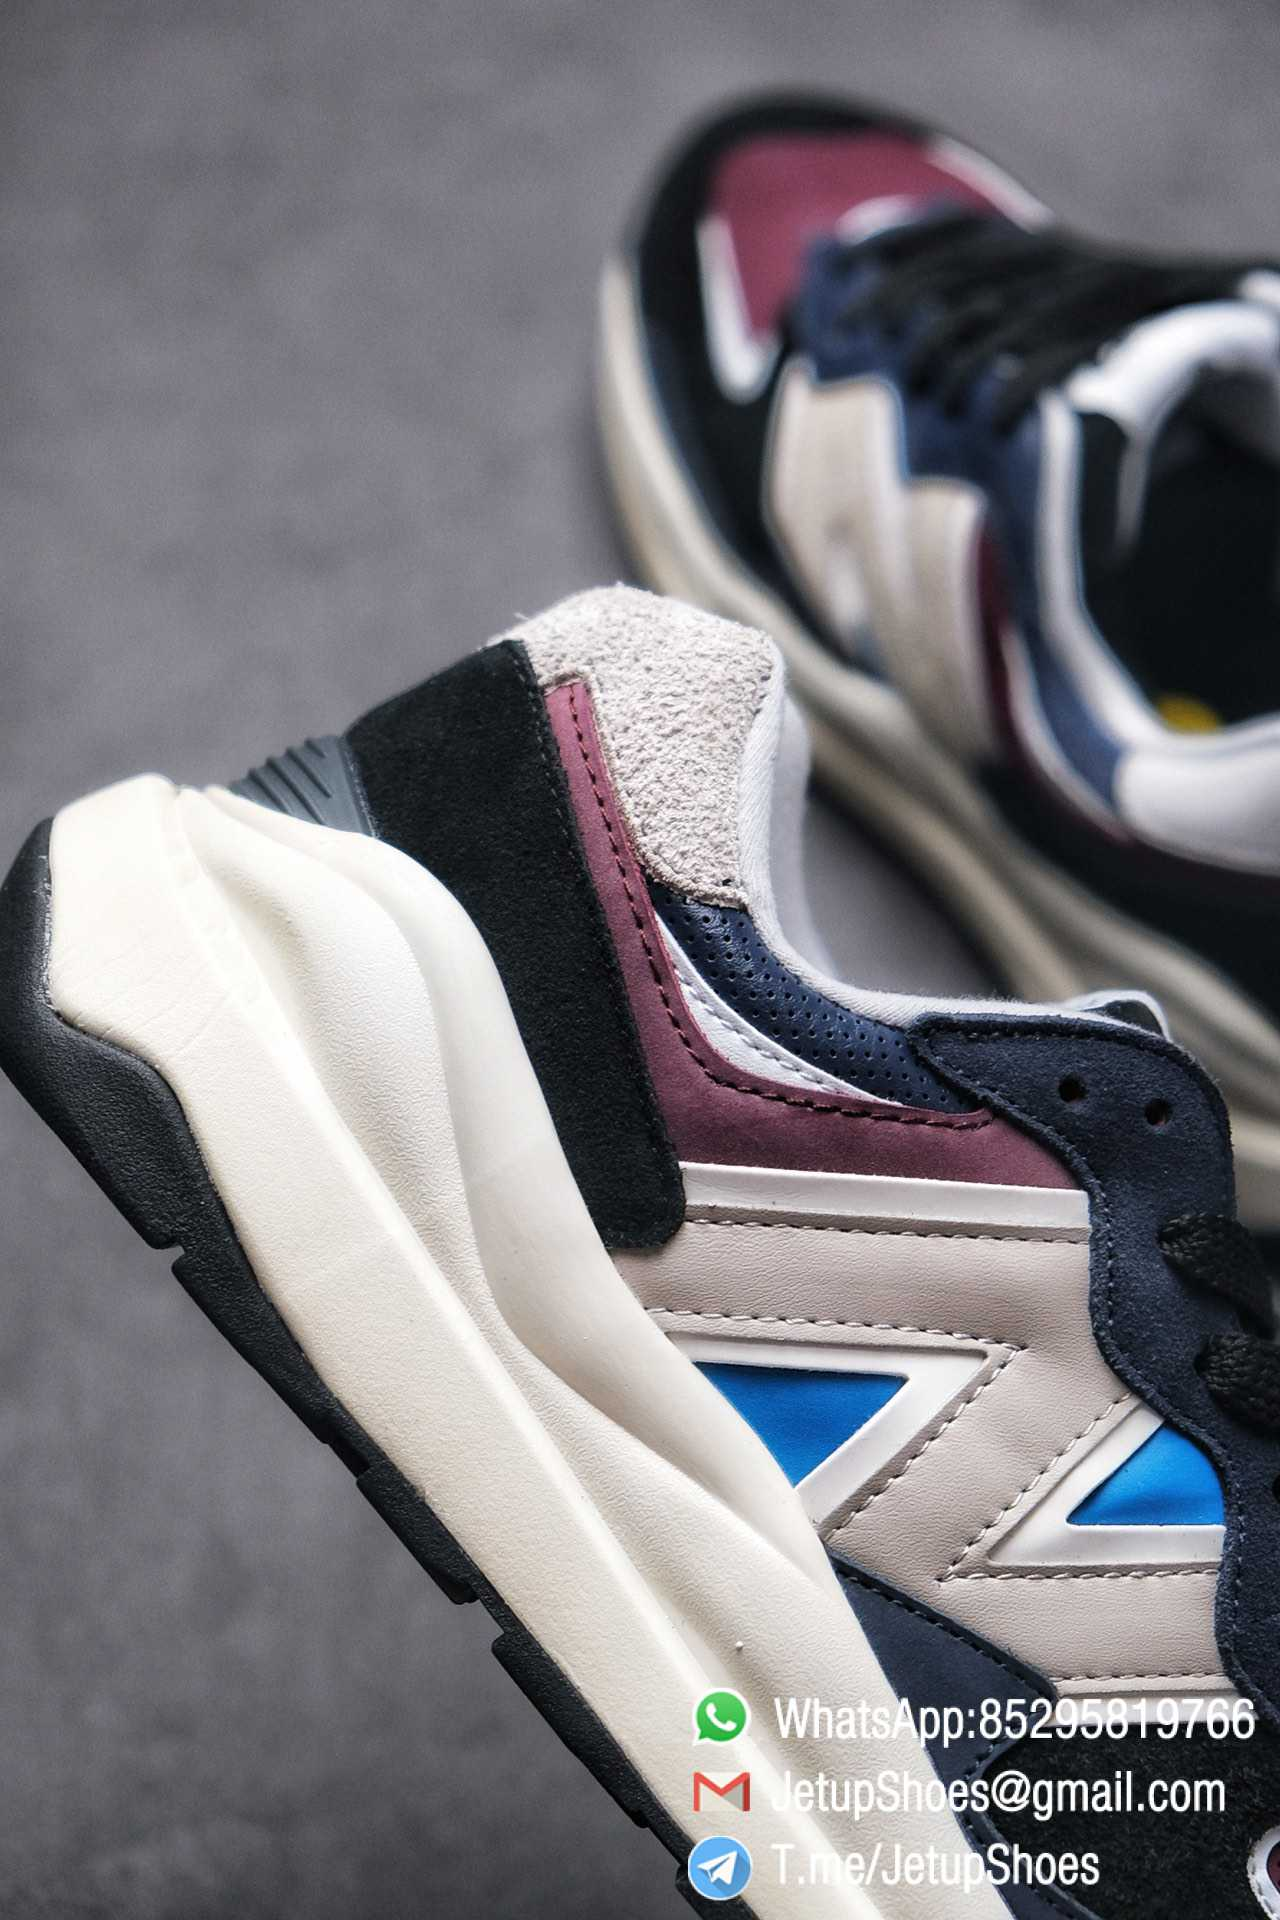 Best Replica New Balance 57 40 Navy Burgundy SKU M5740TB Navy And Burgundy Panels Appear Top Quality 05